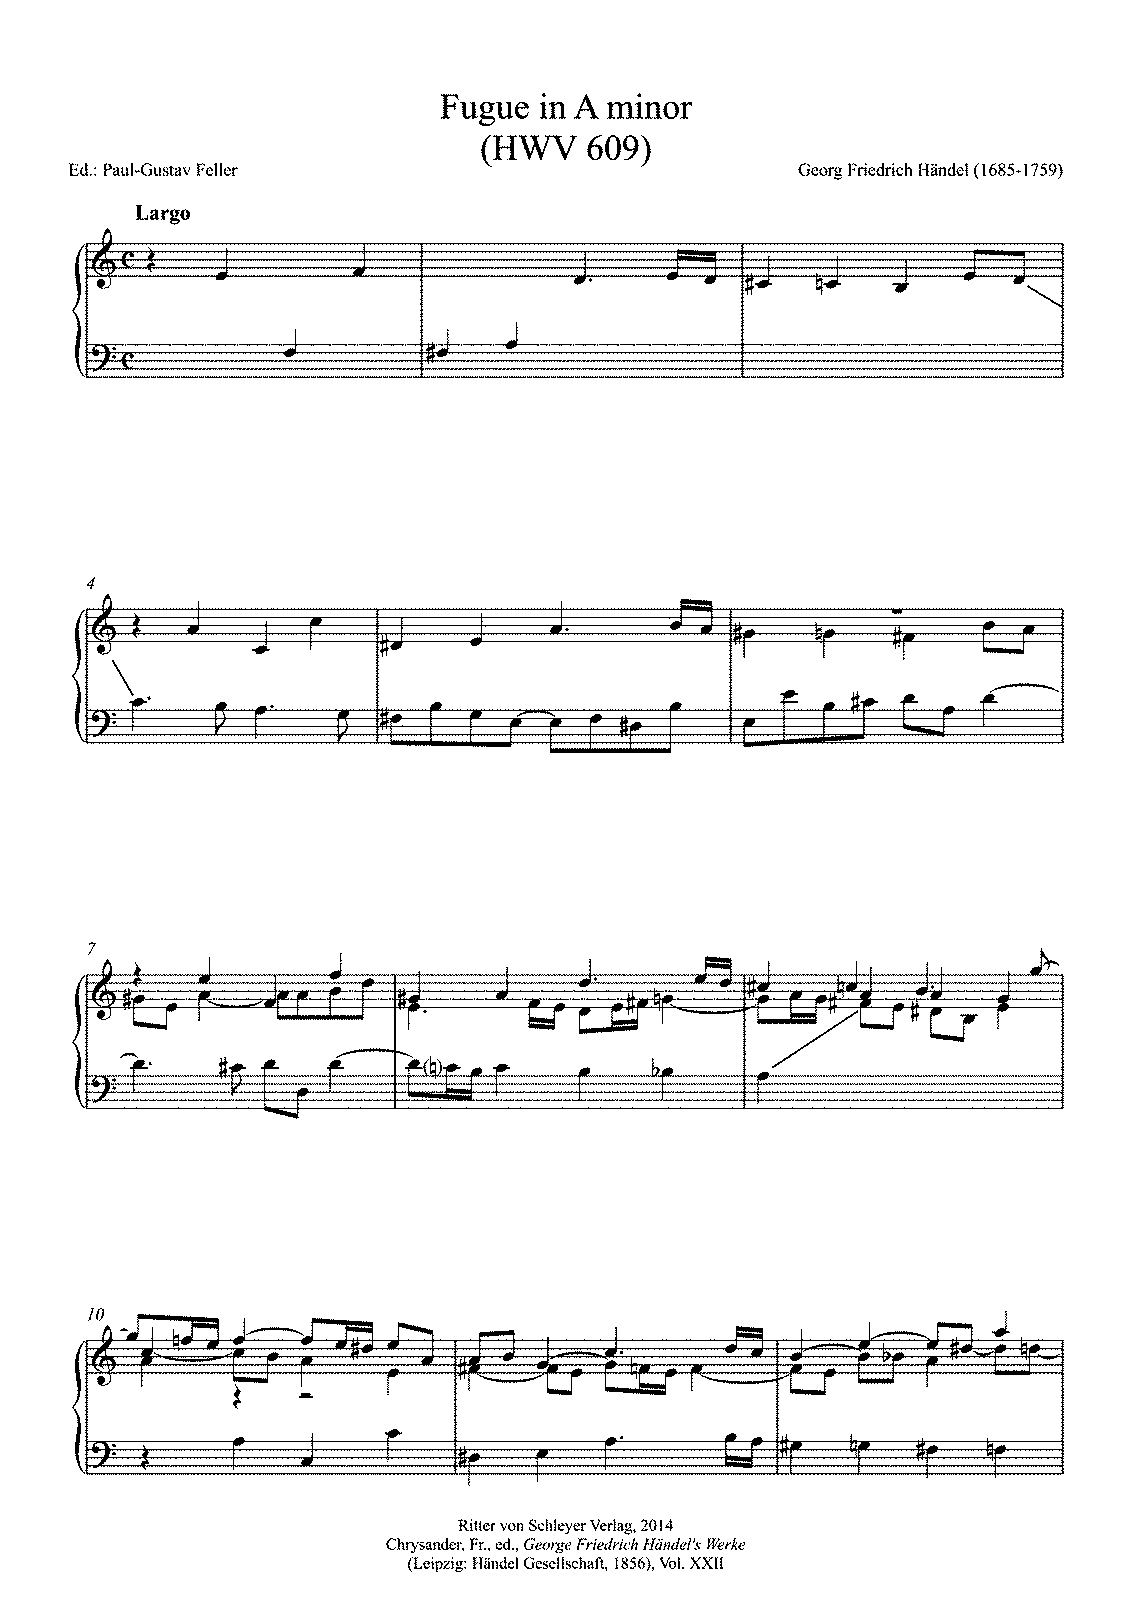 PMLP481267-Händel; Fugue in A minor HWV 609.pdf